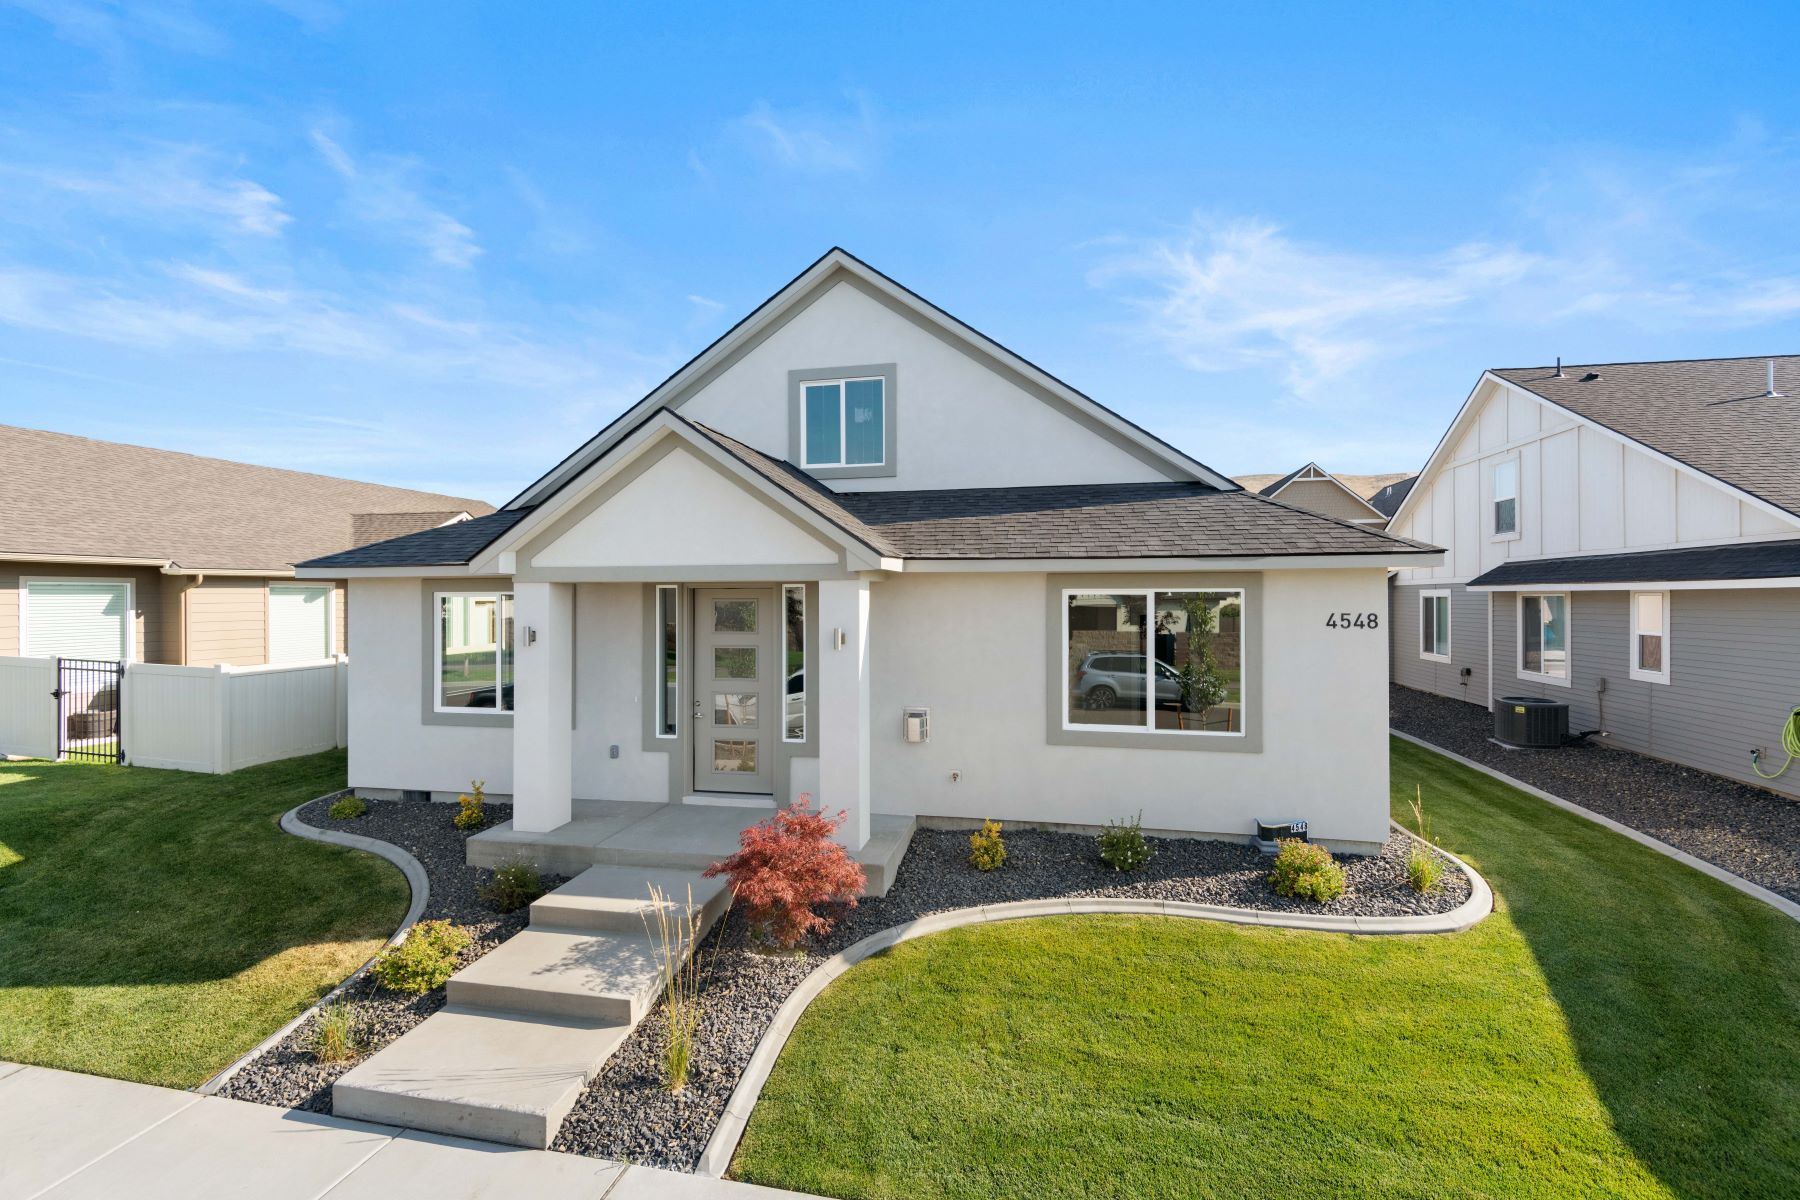 Single Family Homes for Sale at Brand new, walk to park, 4 bedroom! 4548 Ava Way Richland, Washington 99352 United States